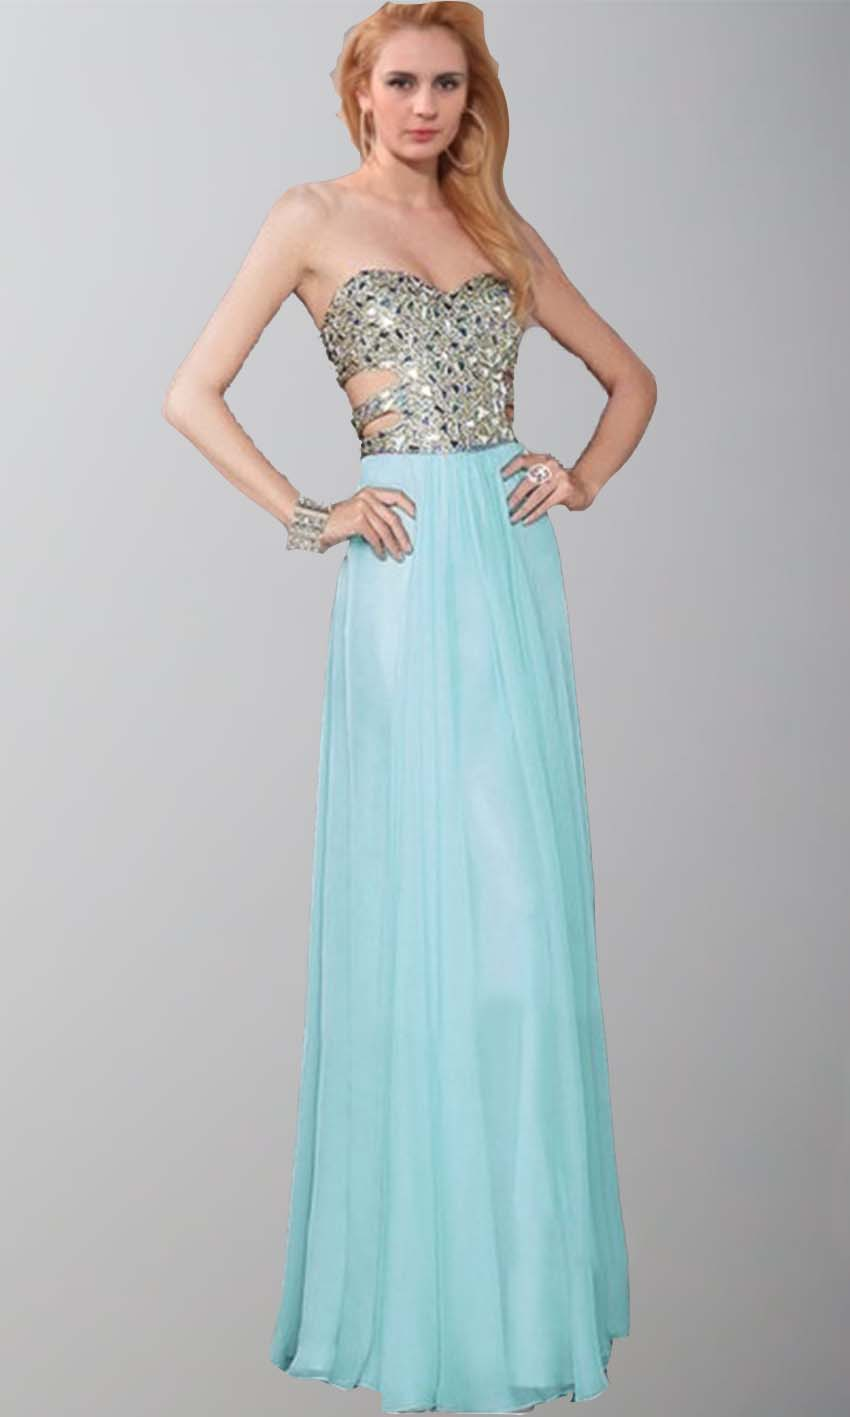 Cut Out Sweetheart Glitter Long Teal Prom Dresses UK KSP395 [KSP395 ...